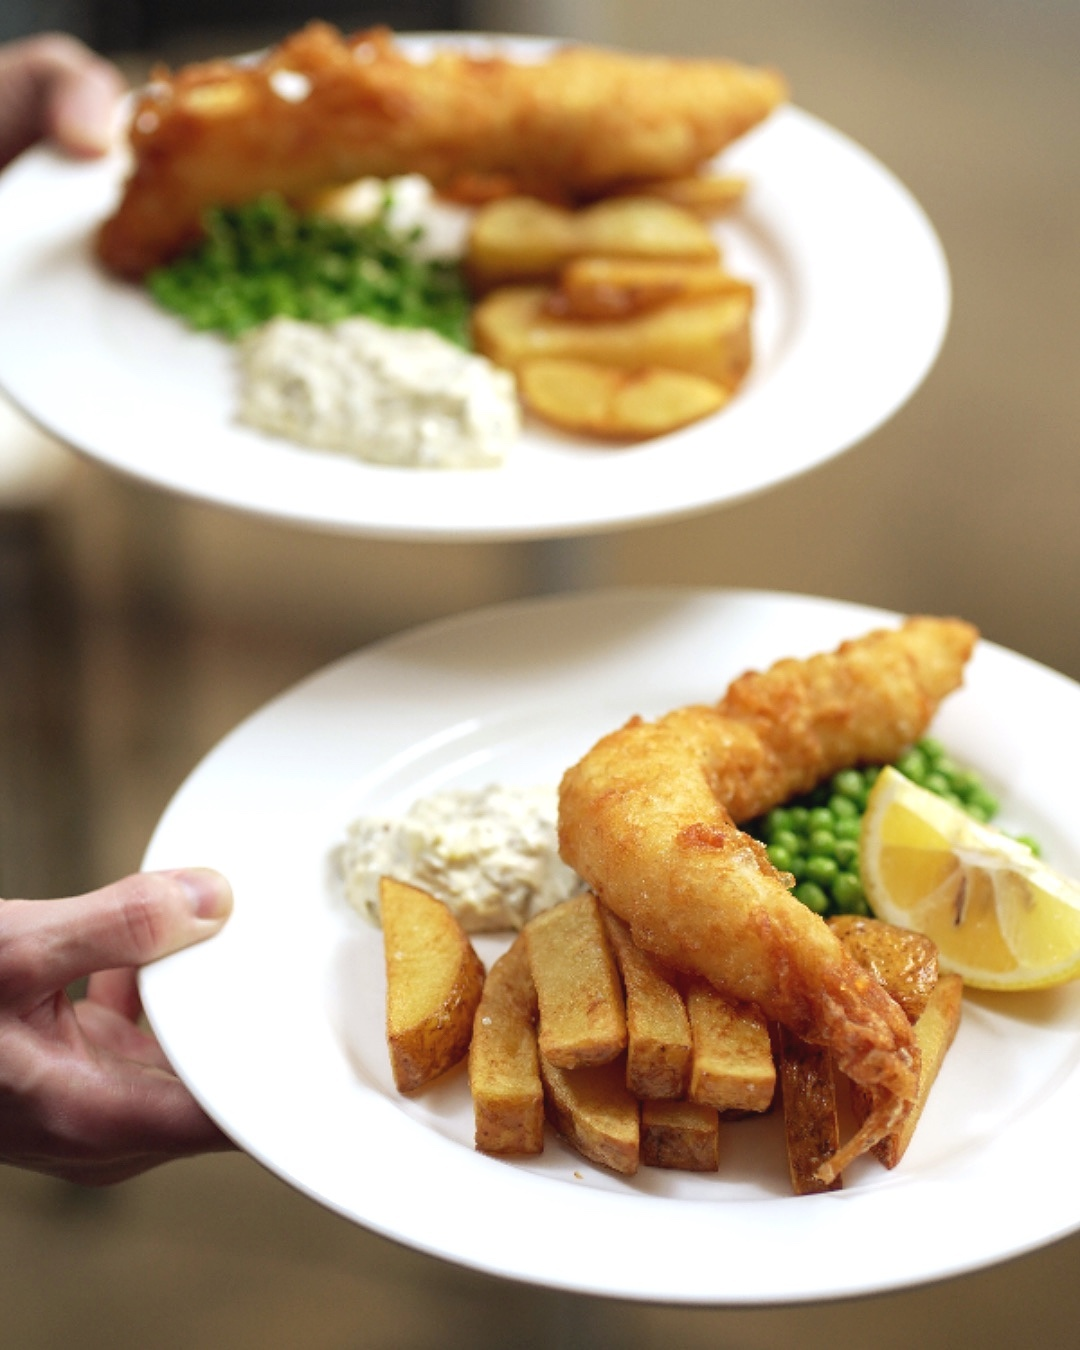 Highgate! You can never go wrong with our delicious & freshly prepared Fish & Chips! Stop by for a meal and an after work pint this evening!  #treatyourself #gardendining #northlondon #highgate #hampstead #food #foodporn #foodphotography #foodstagram #foodofinstagram